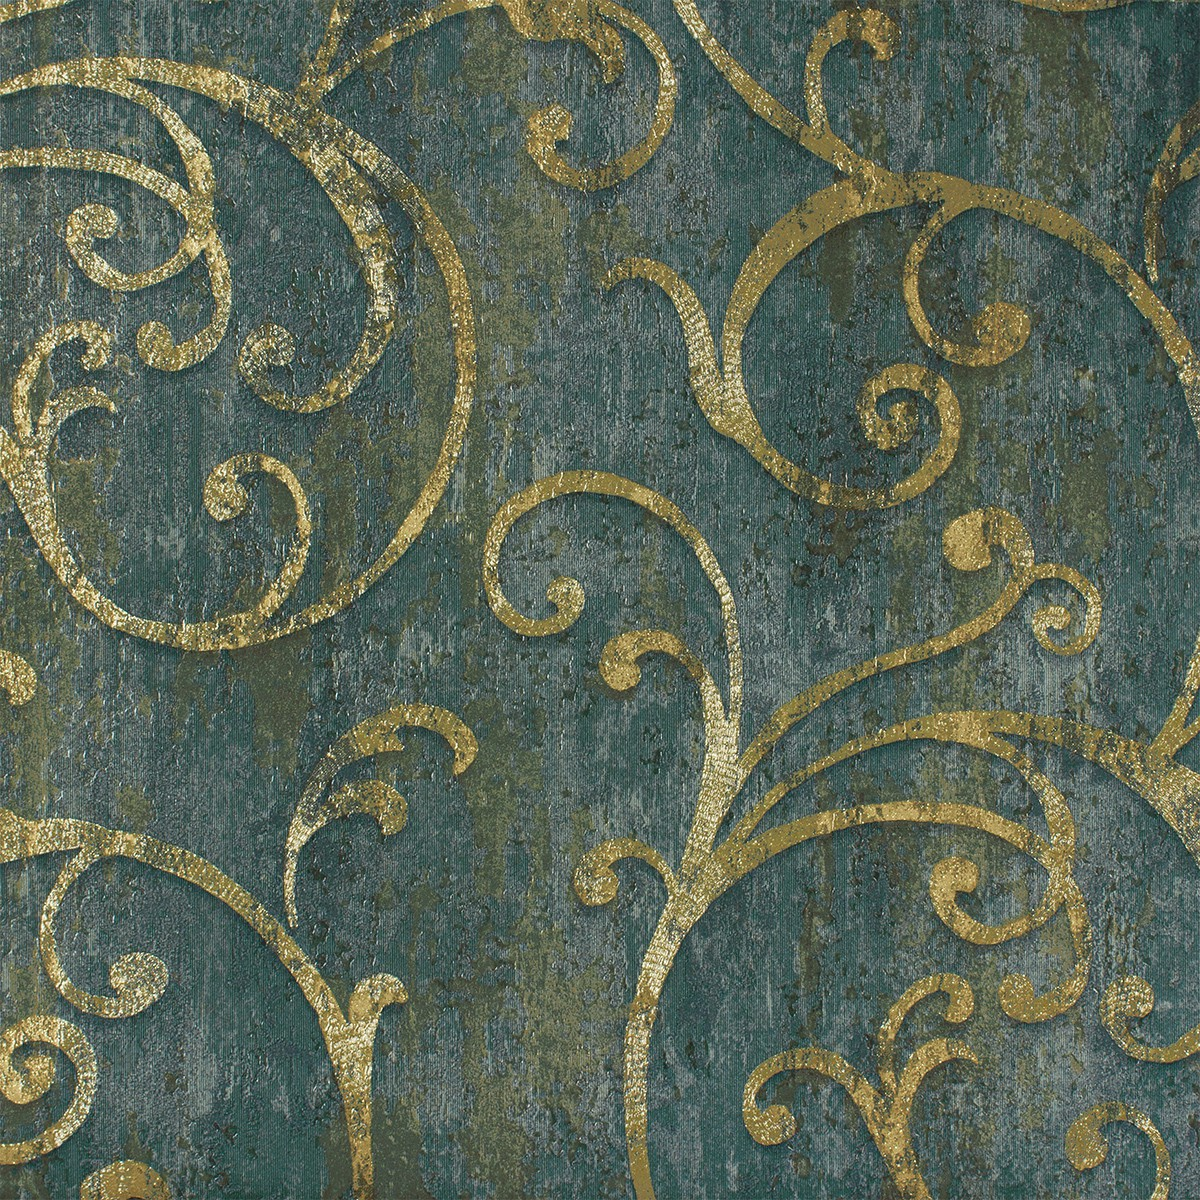 Tapete Wohnzimmer Gold Pin By J A On Wall Colour Pinterest Wallpaper